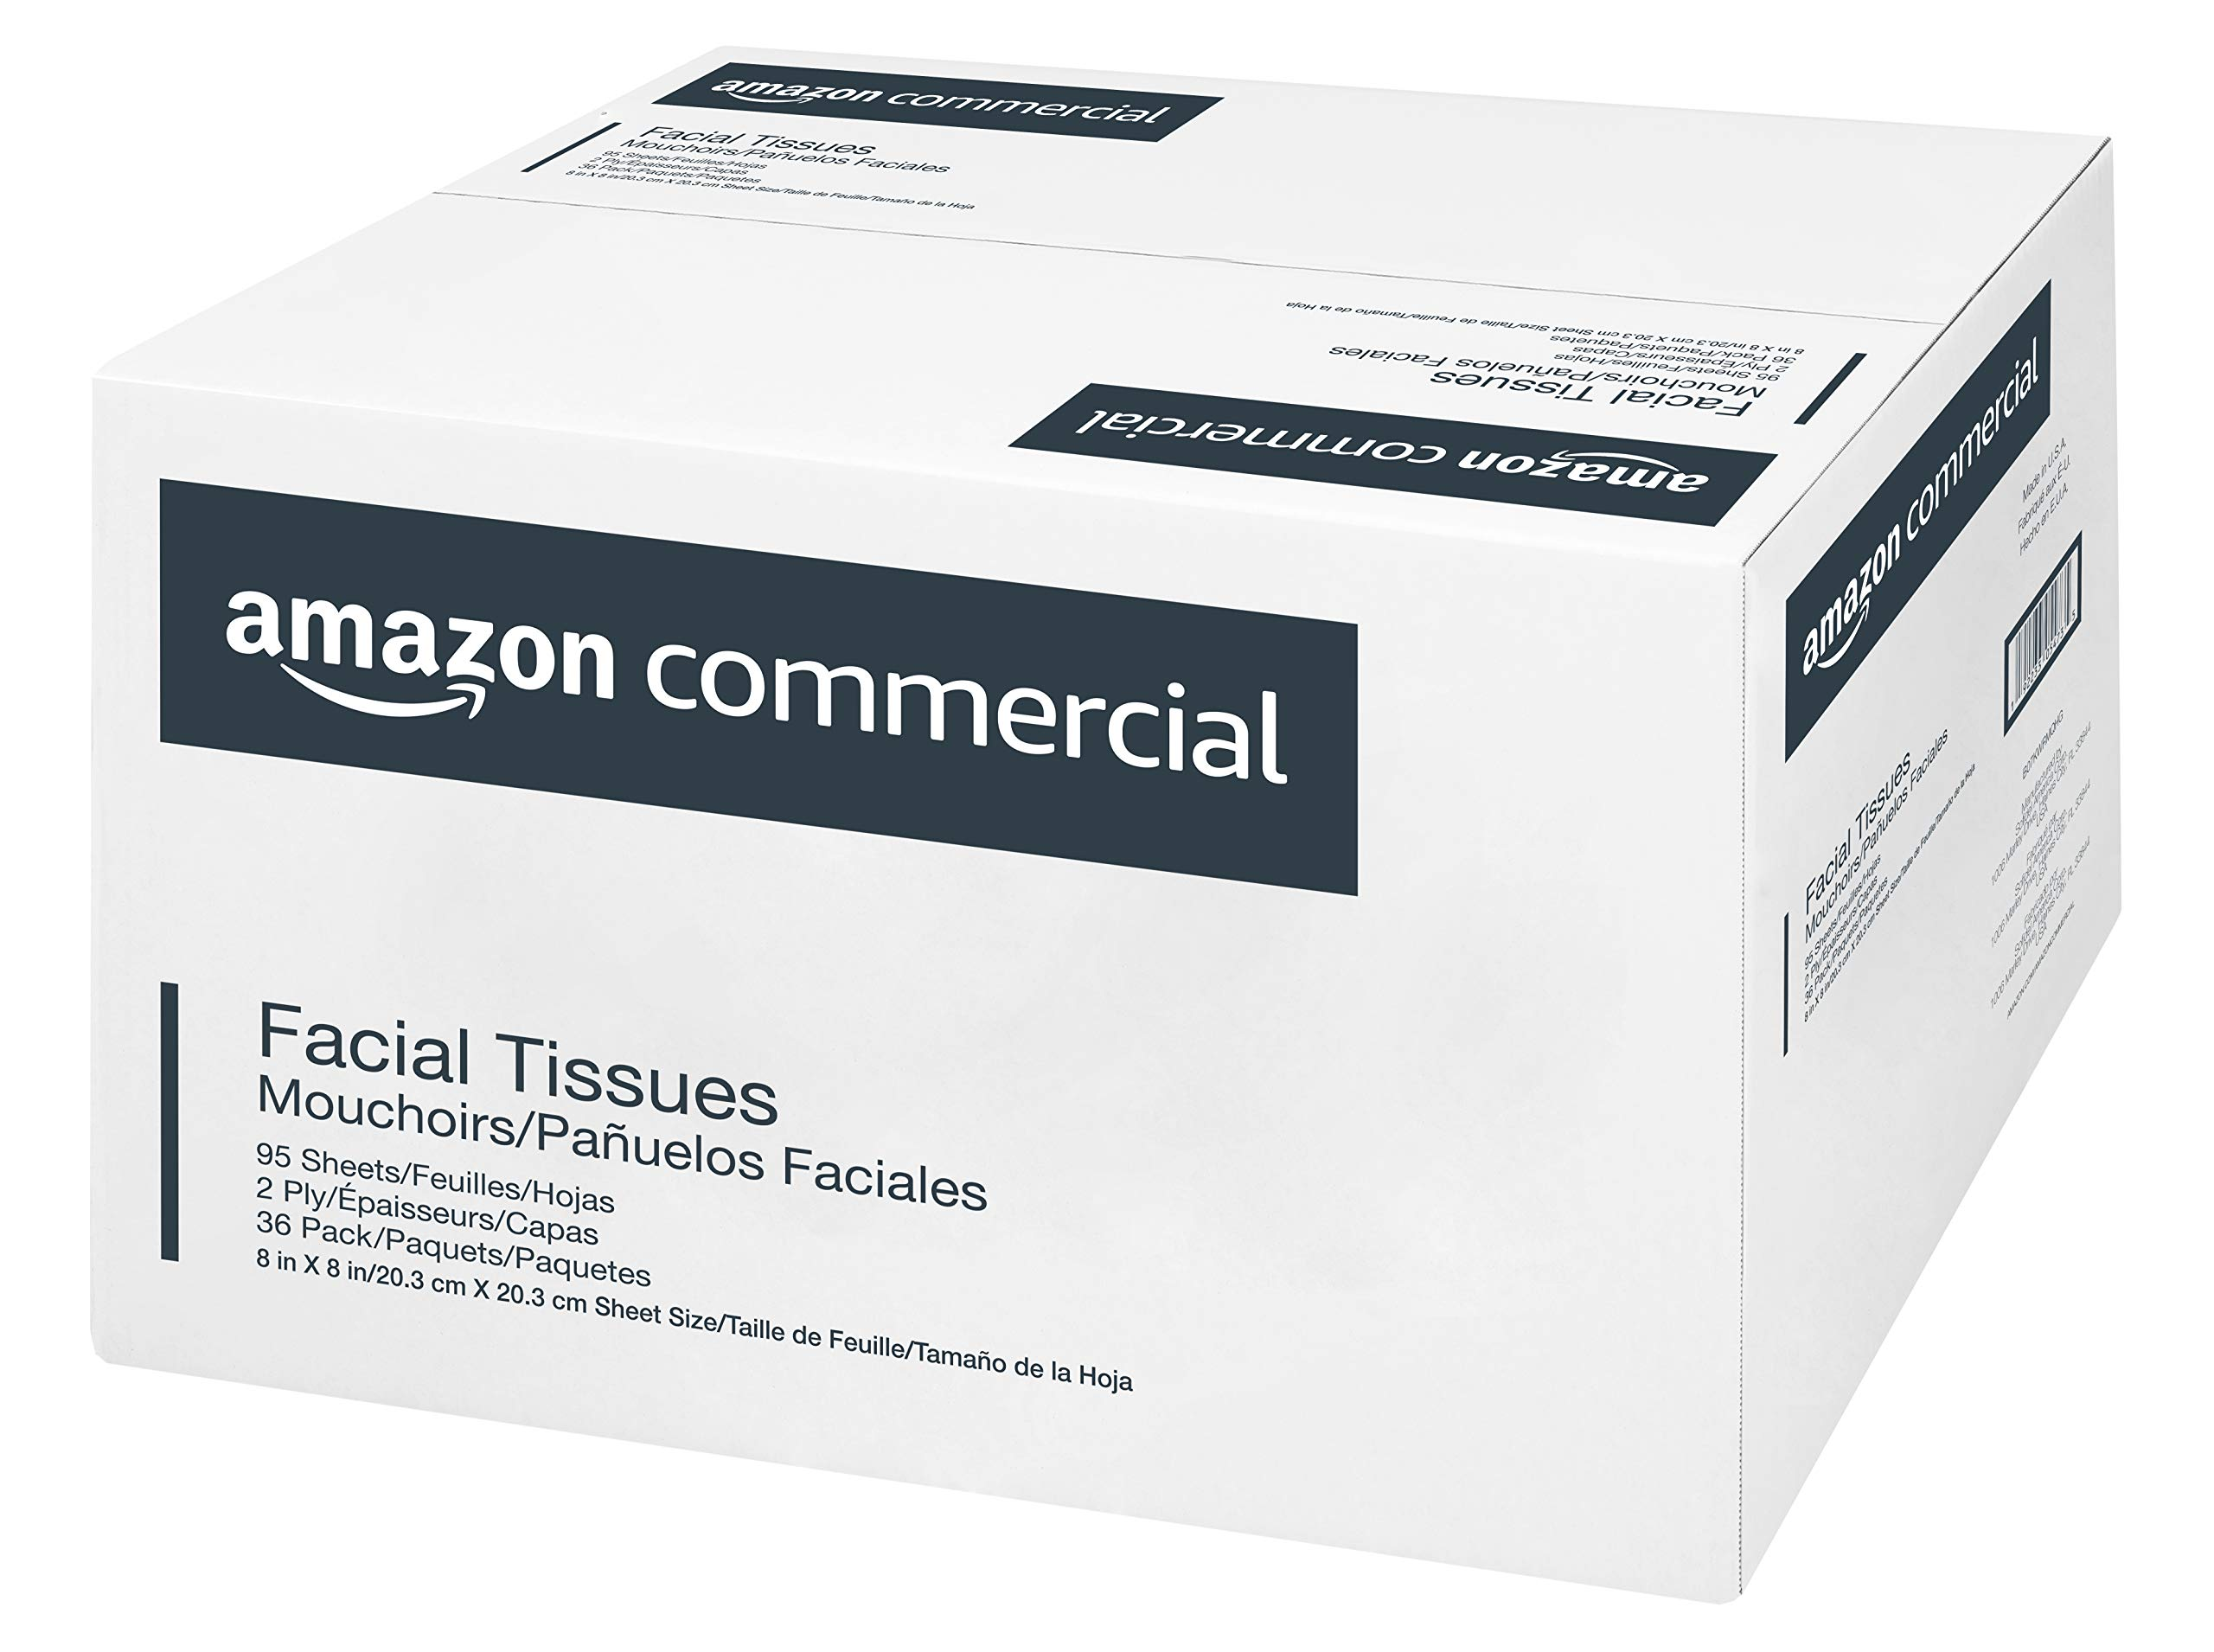 AmazonCommercial Facial Tissue Cube Box, 95 Sheets per Box, 36 Boxes by AmazonCommercial